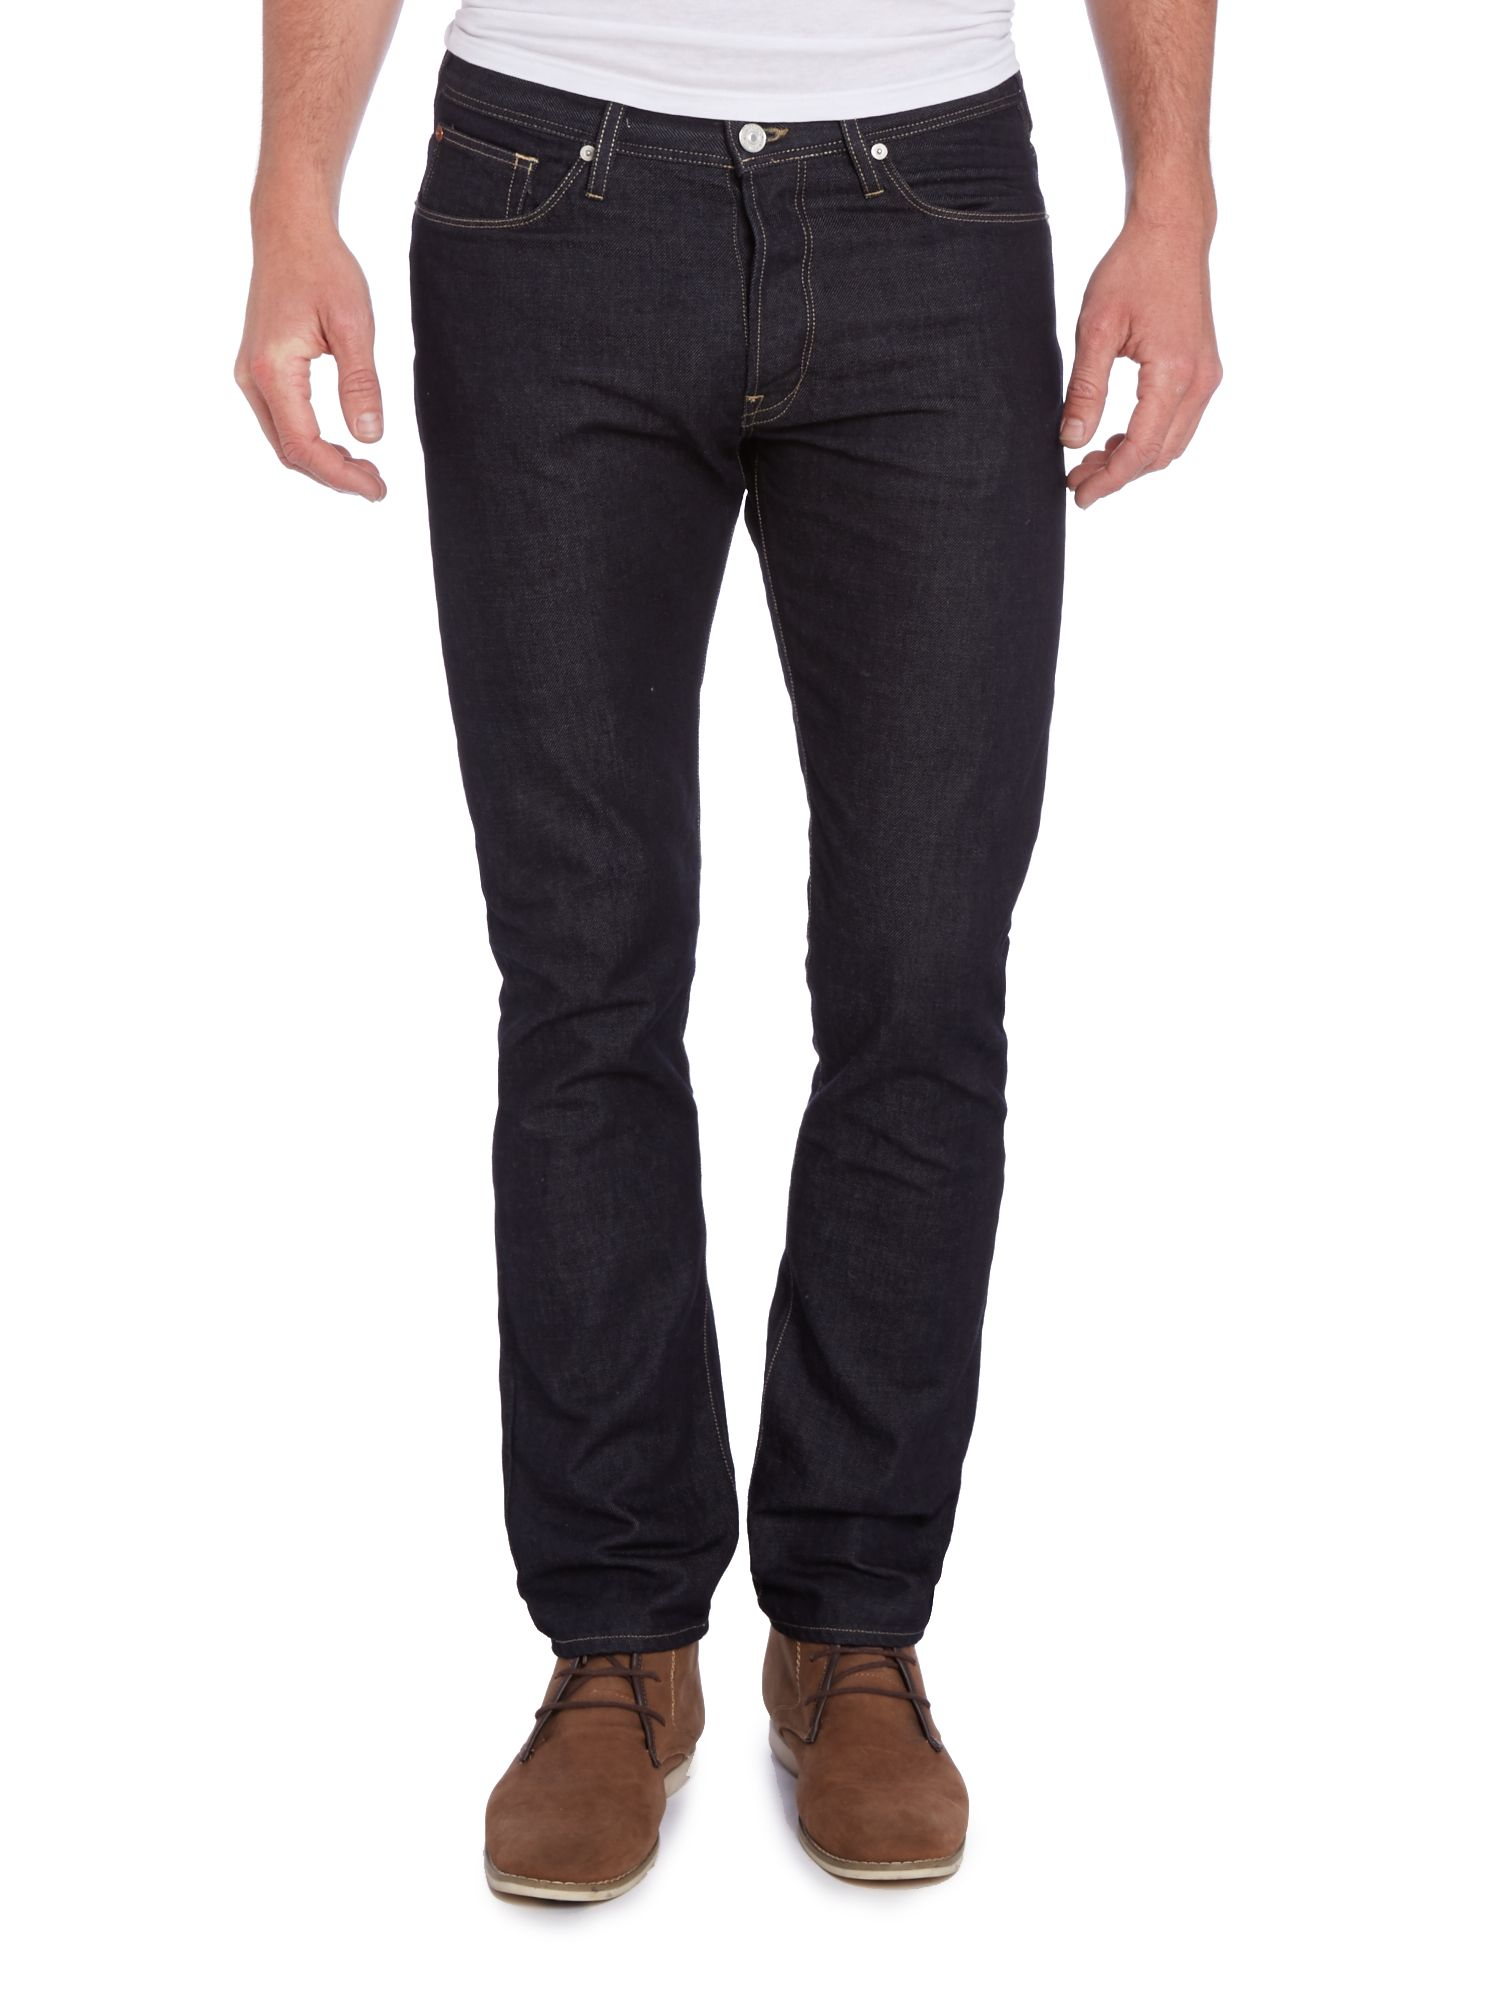 Tapered dark rinse wash jeans